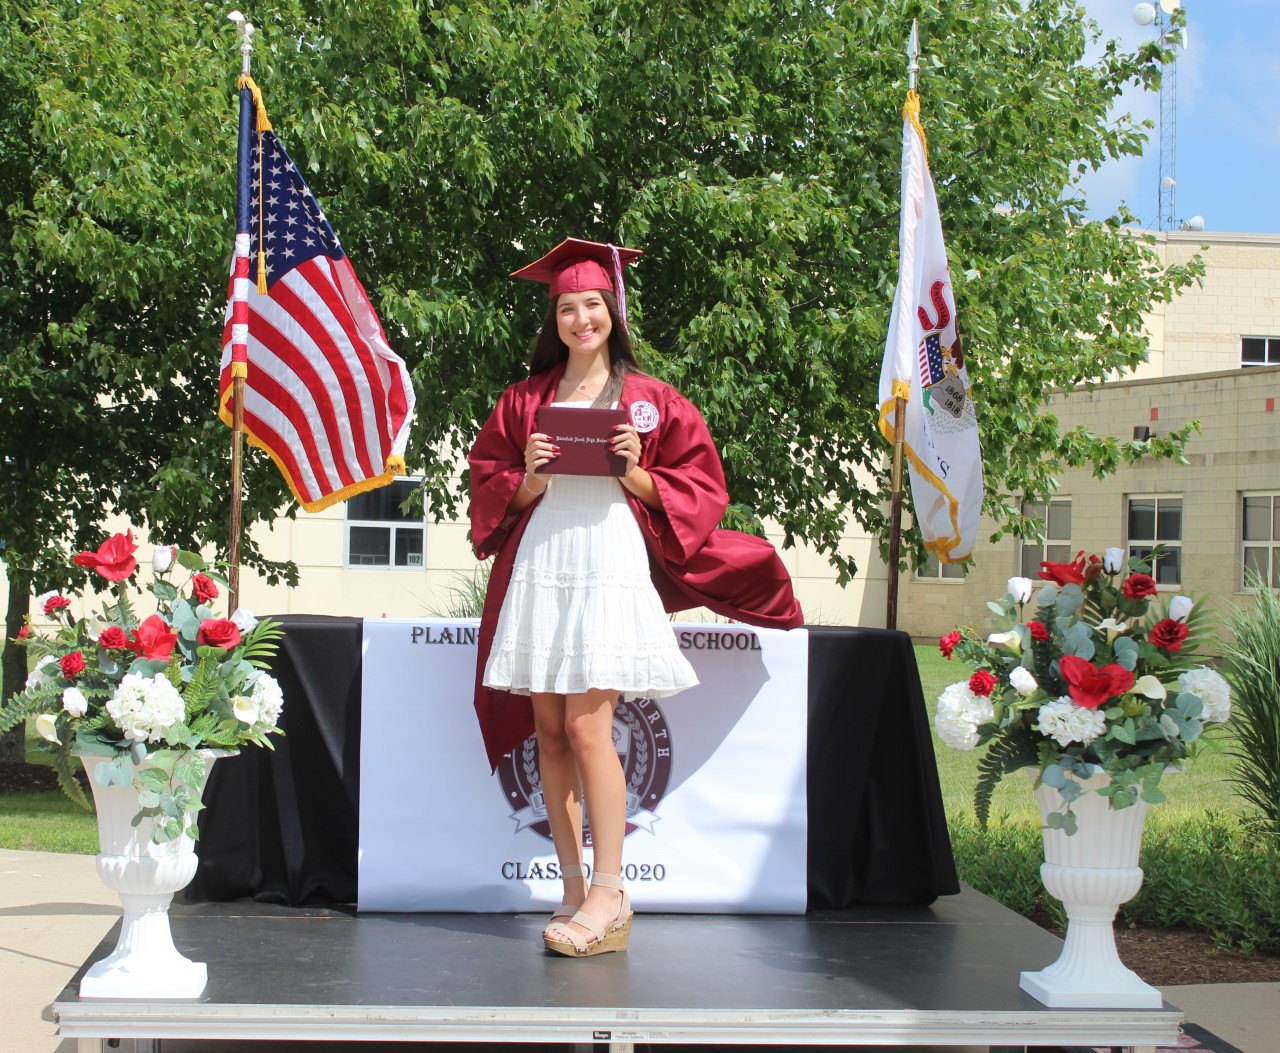 Sydney Allen receives her diploma at the Drive-through Graduation on Friday, July 17, 2020. Drive-through Graduations were held in place of traditional in-person graduations which were cancelled due to the COVID-19 pandemic.